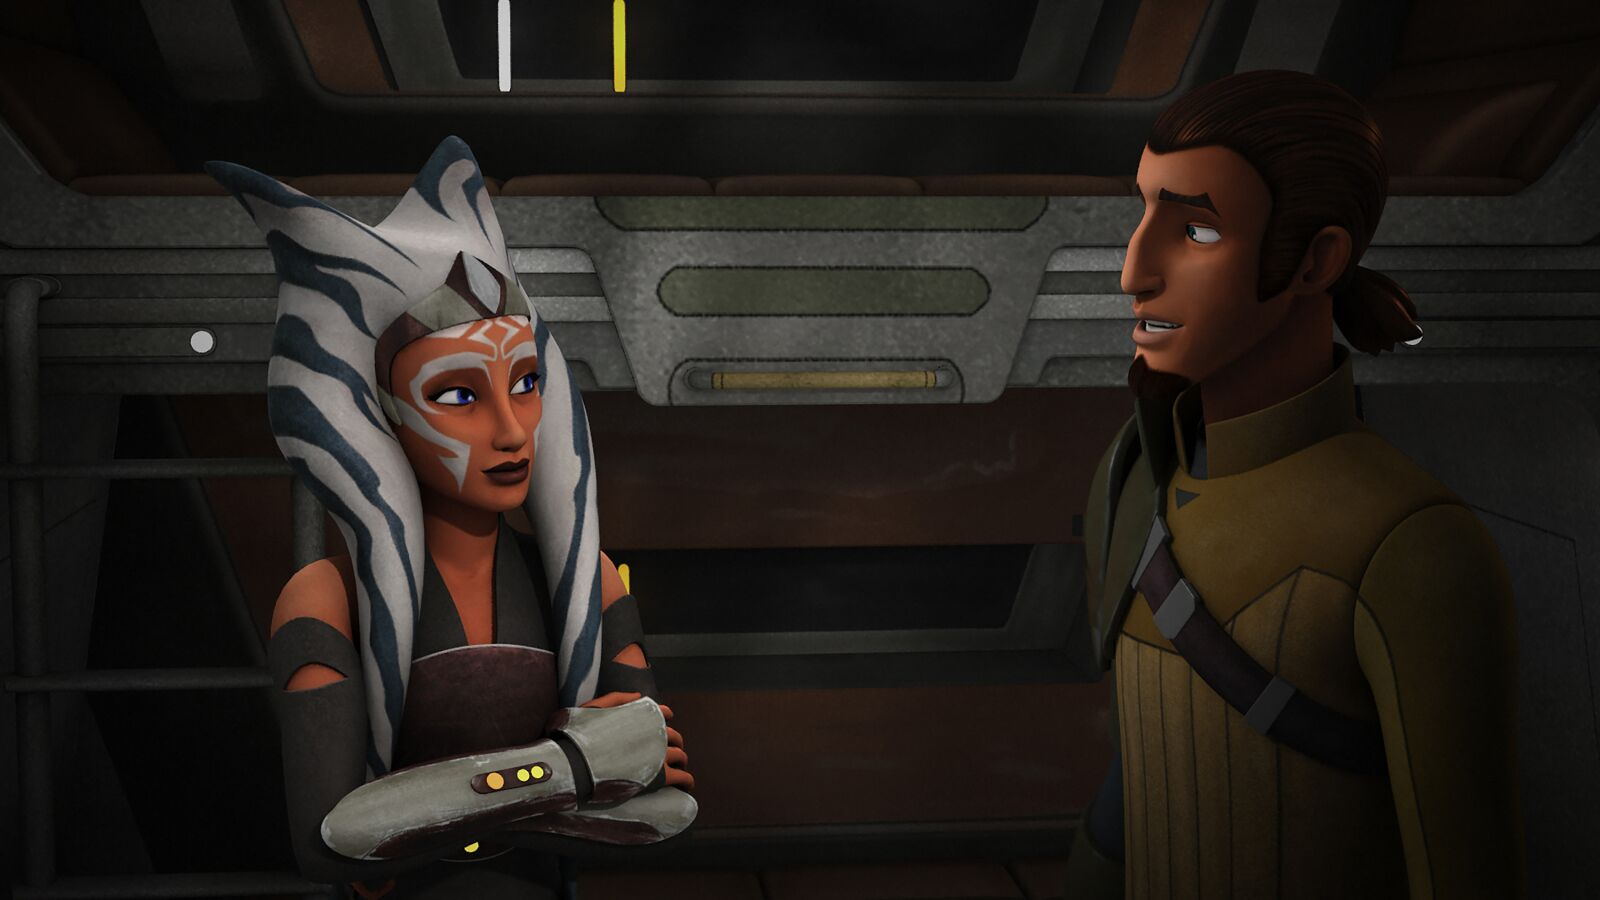 Clone Wars: New trailer includes appearance from a Rebels Kanan Jarrus